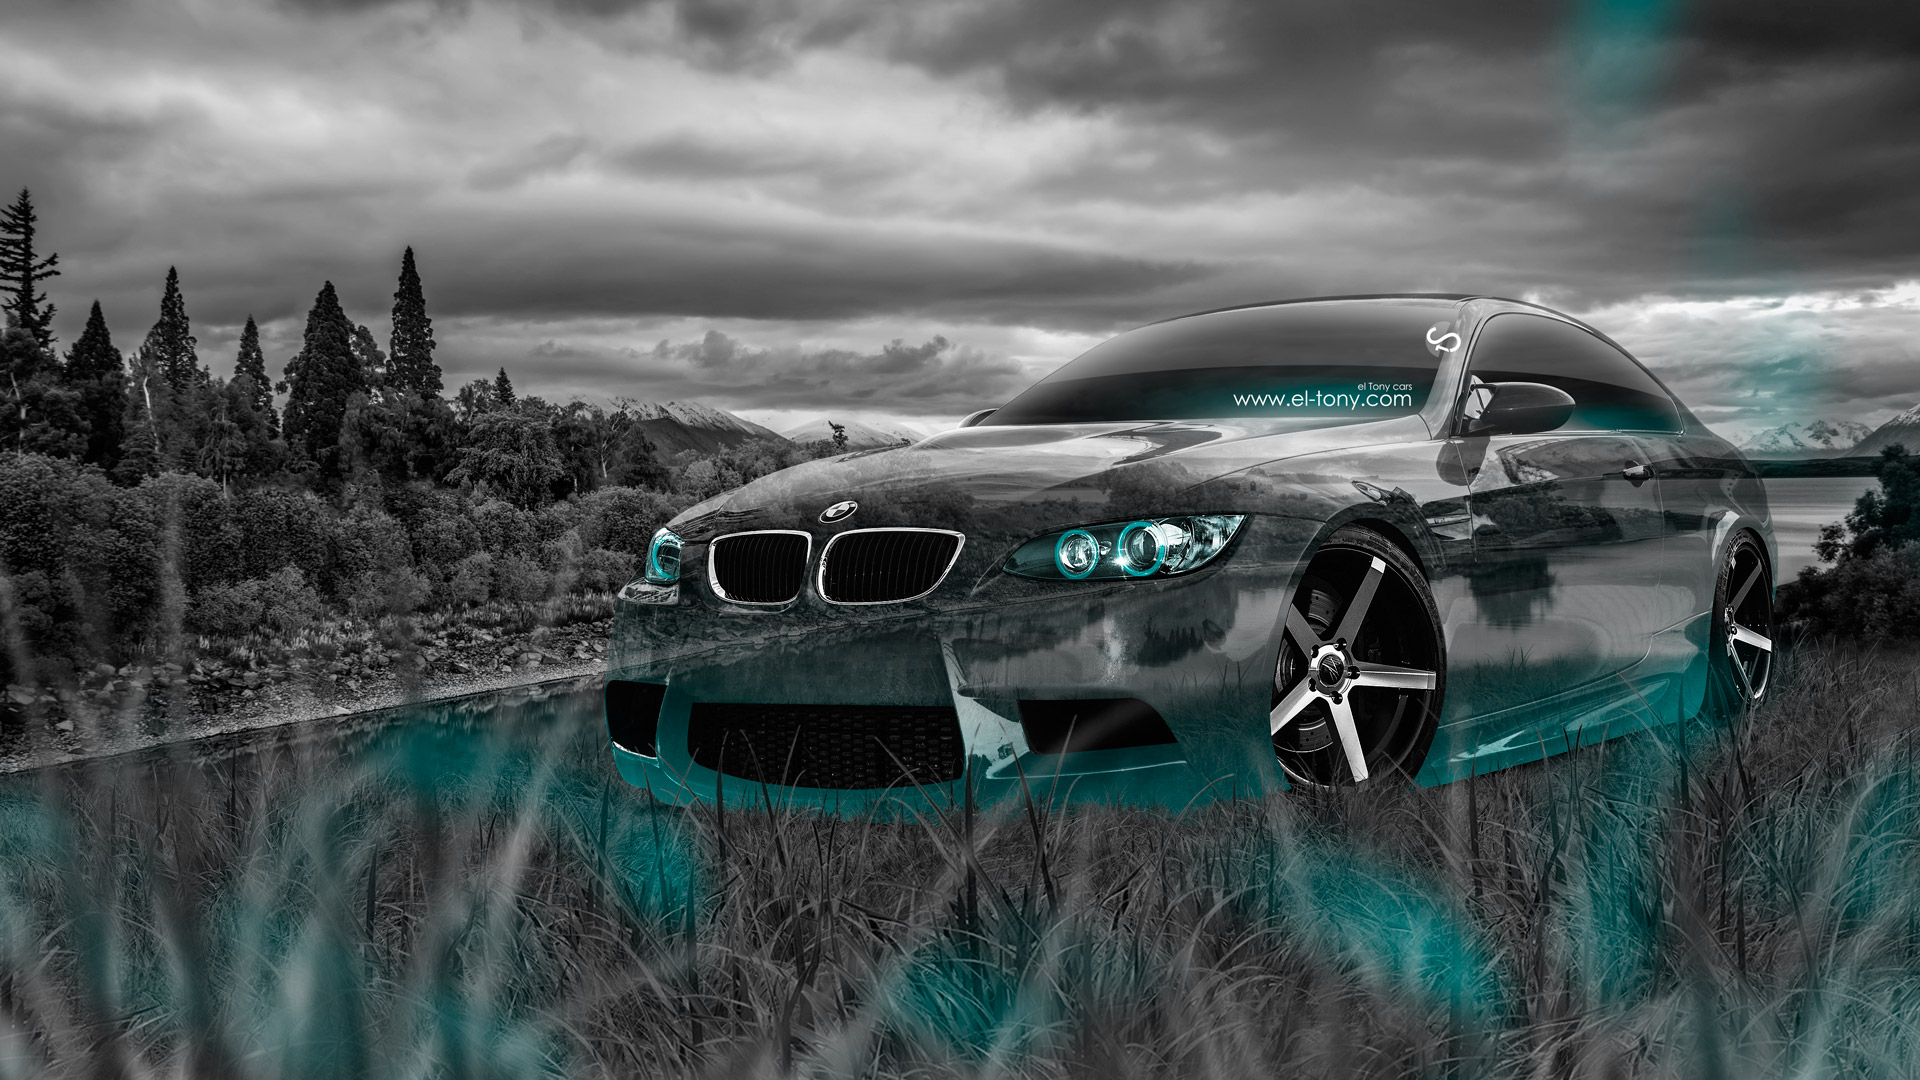 Attractive ... BMW E92 M3 Crystal Nature Car 2014 Azure